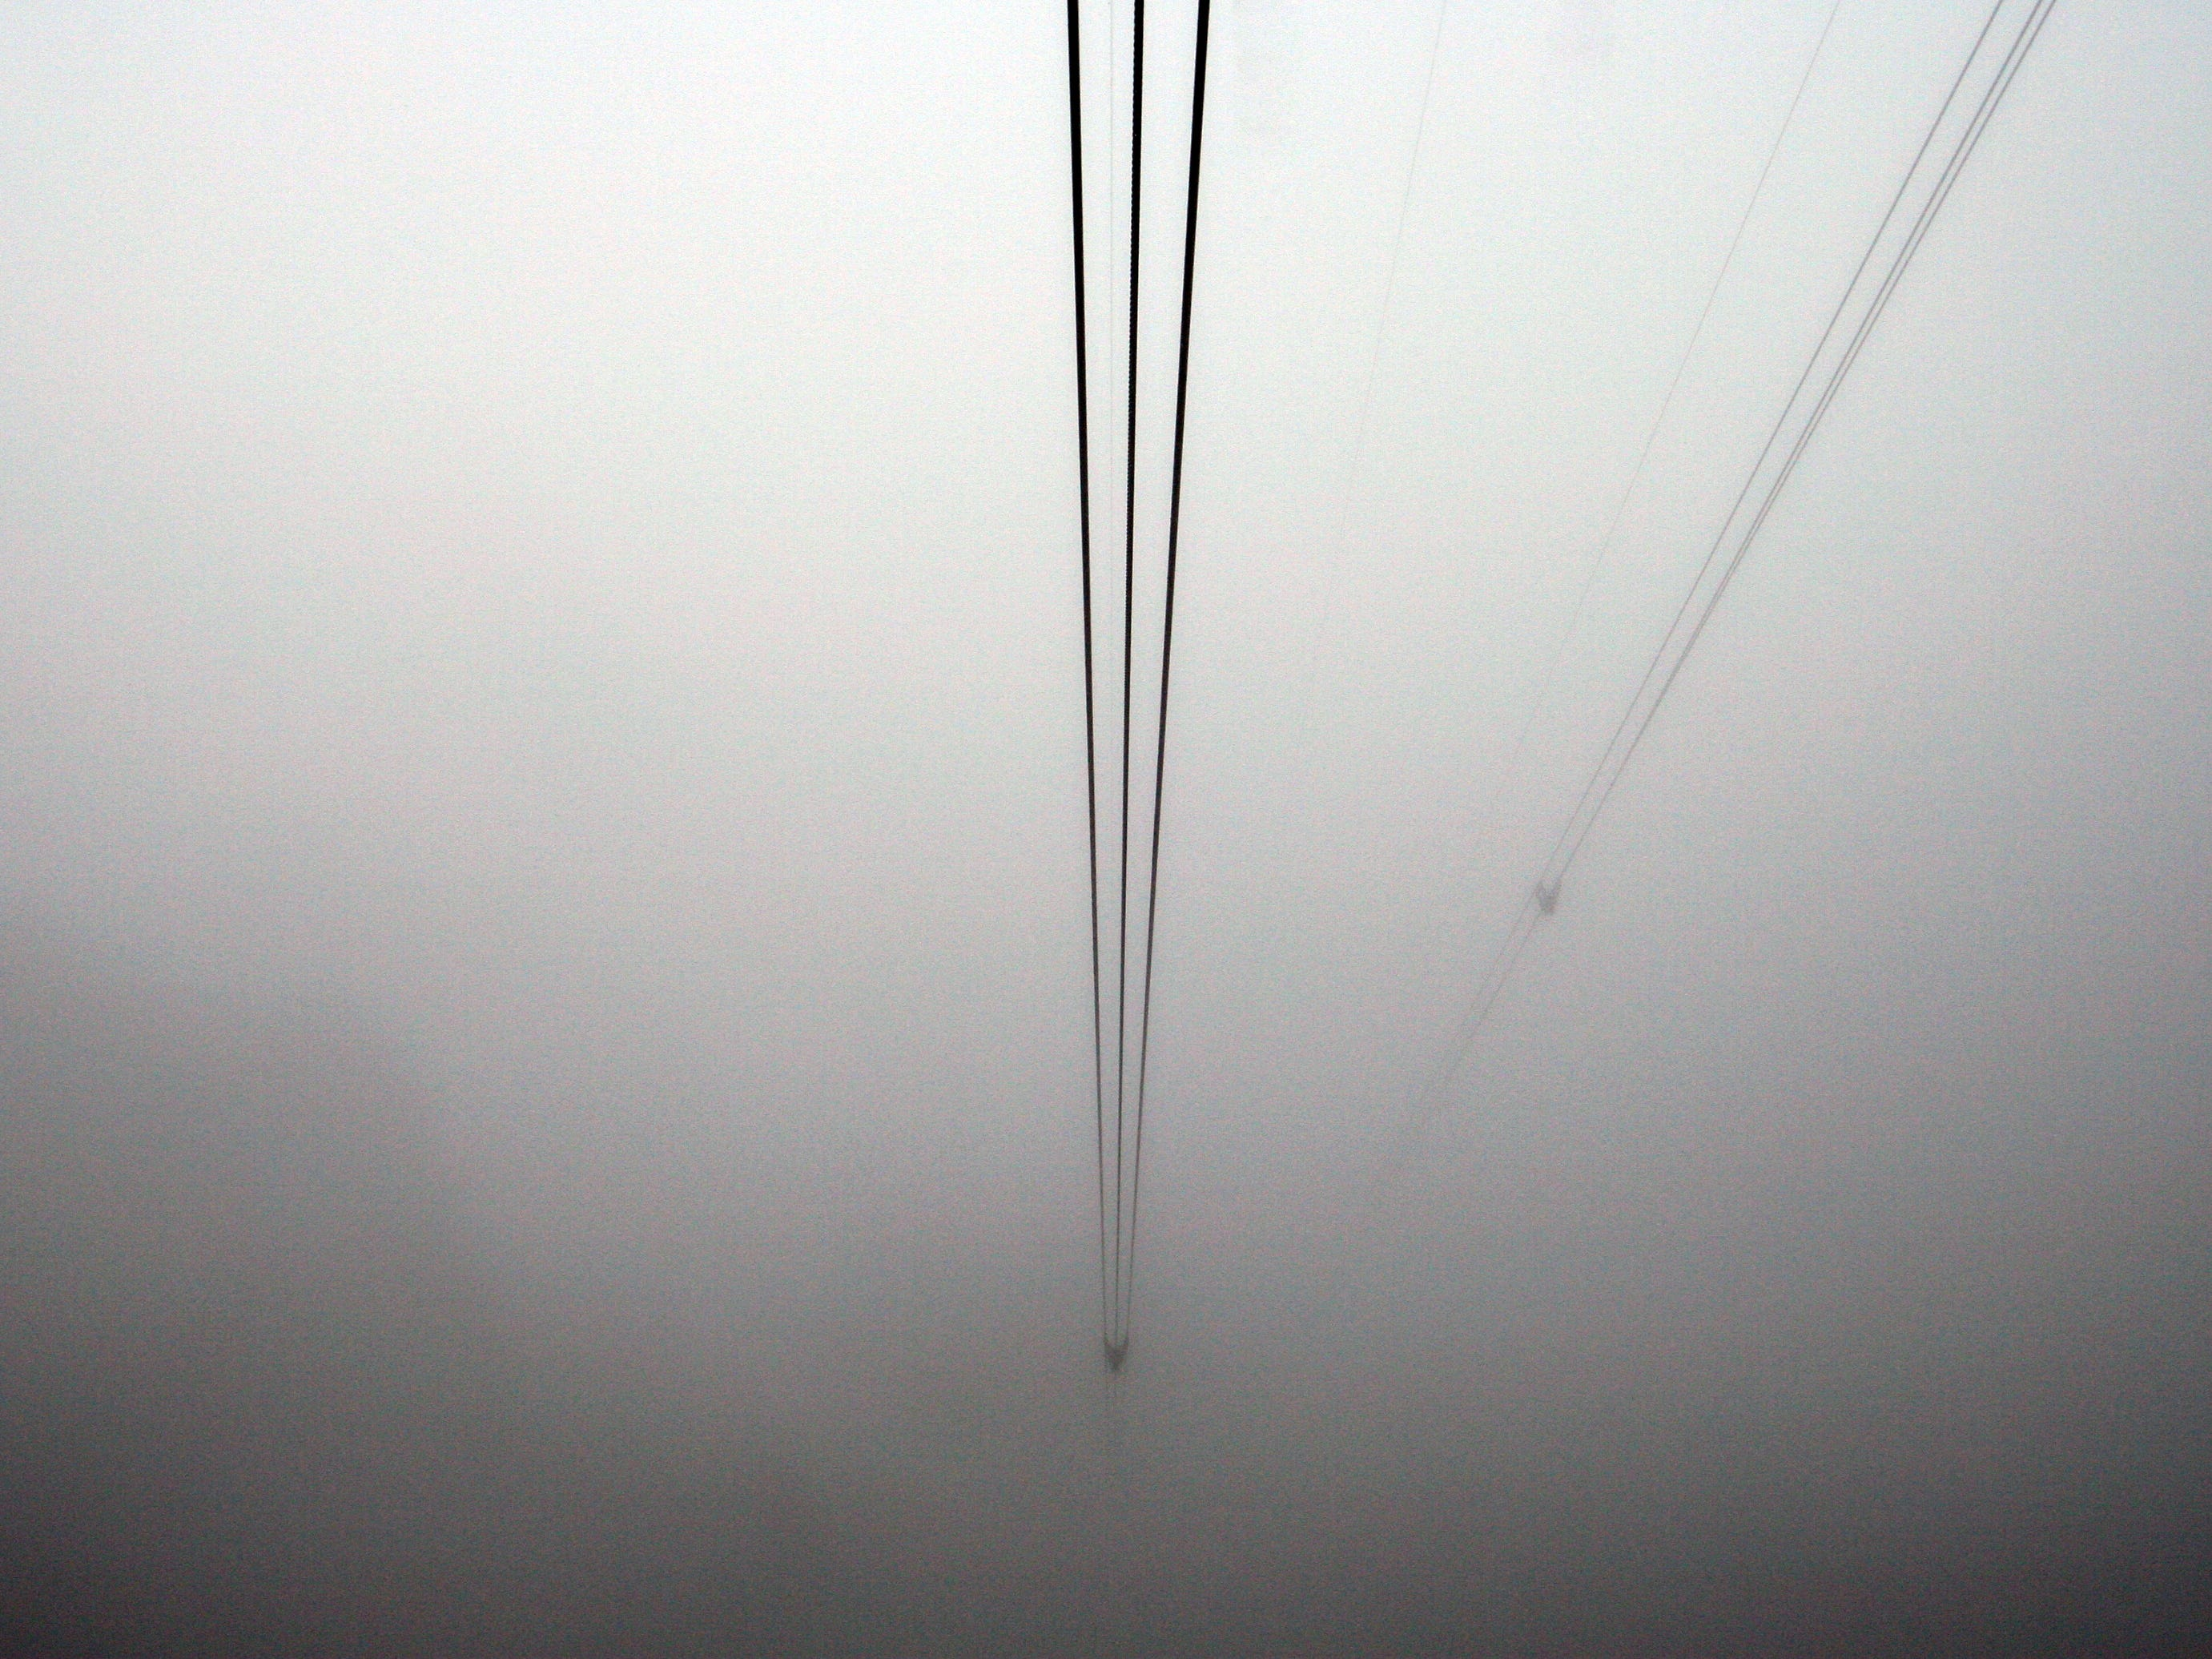 This December 2010 photo shows clouds engulfing cables that are used by the Palm Springs Aerial Tramway.